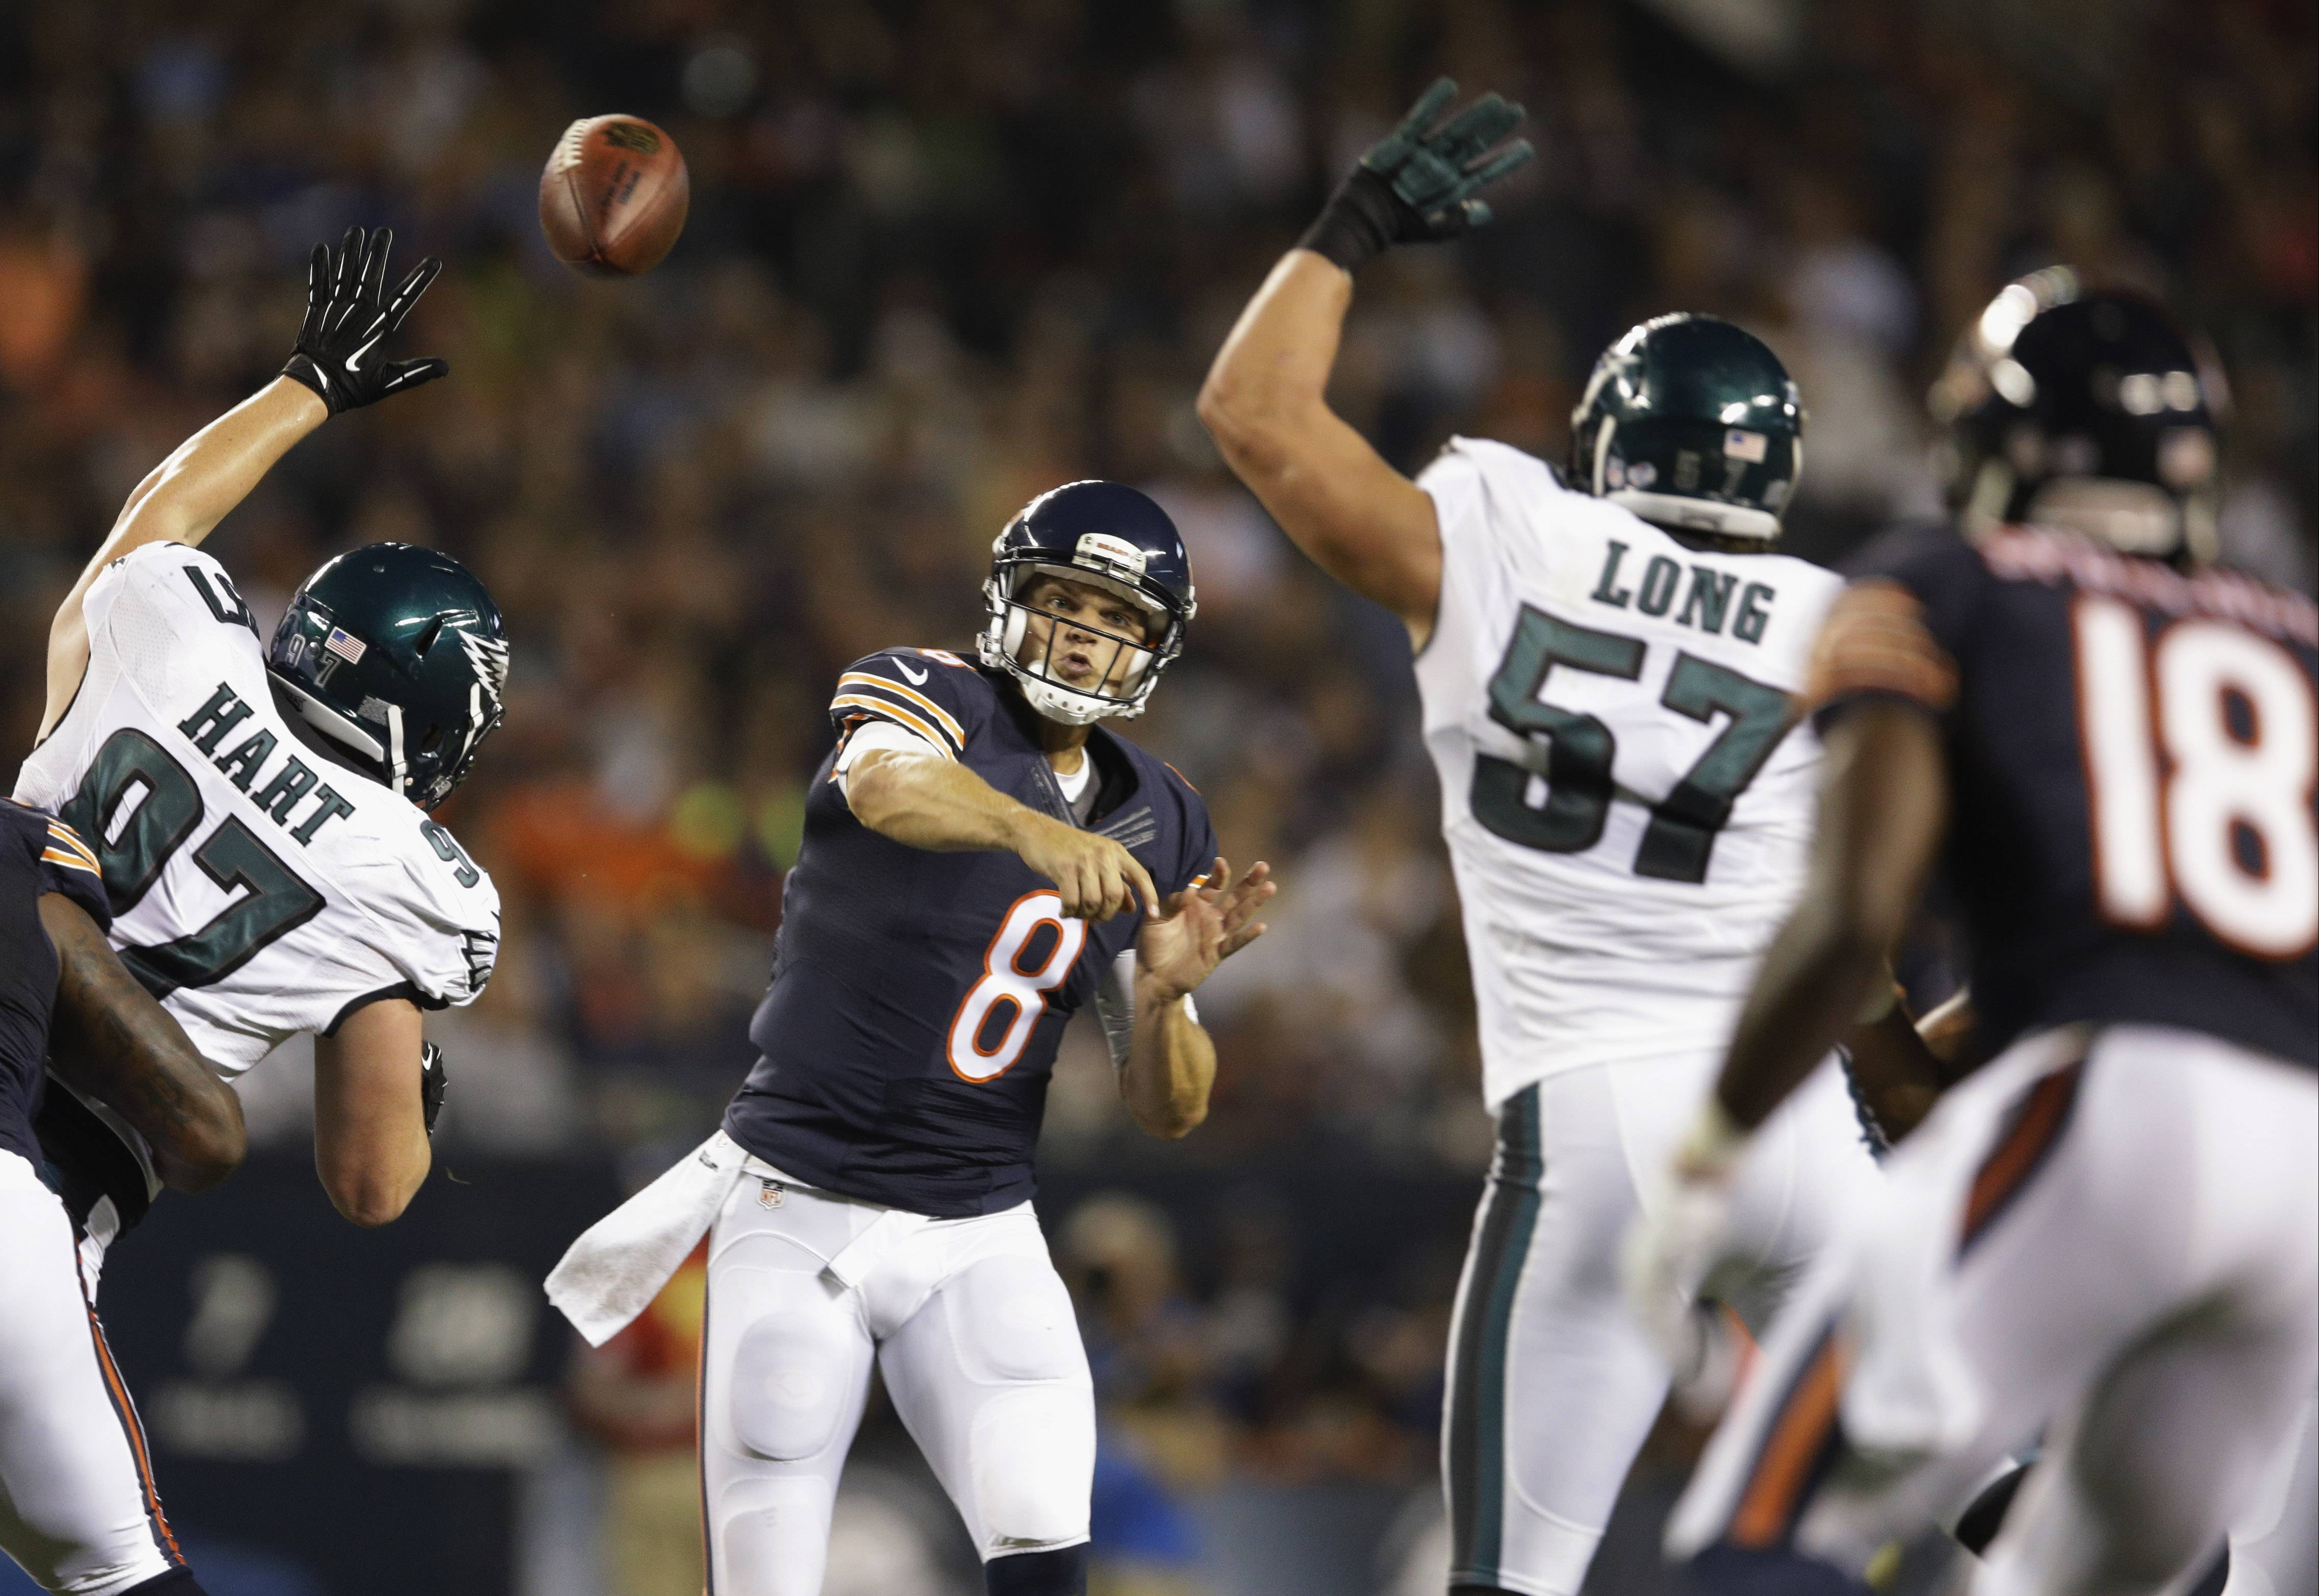 Jimmy Clausen, shown here against the Eagles in Friday's preseason opener, will continue his quest to be the Bears' backup quarterback Thursday against the Jaguars at Soldier Field in the second preseason game.